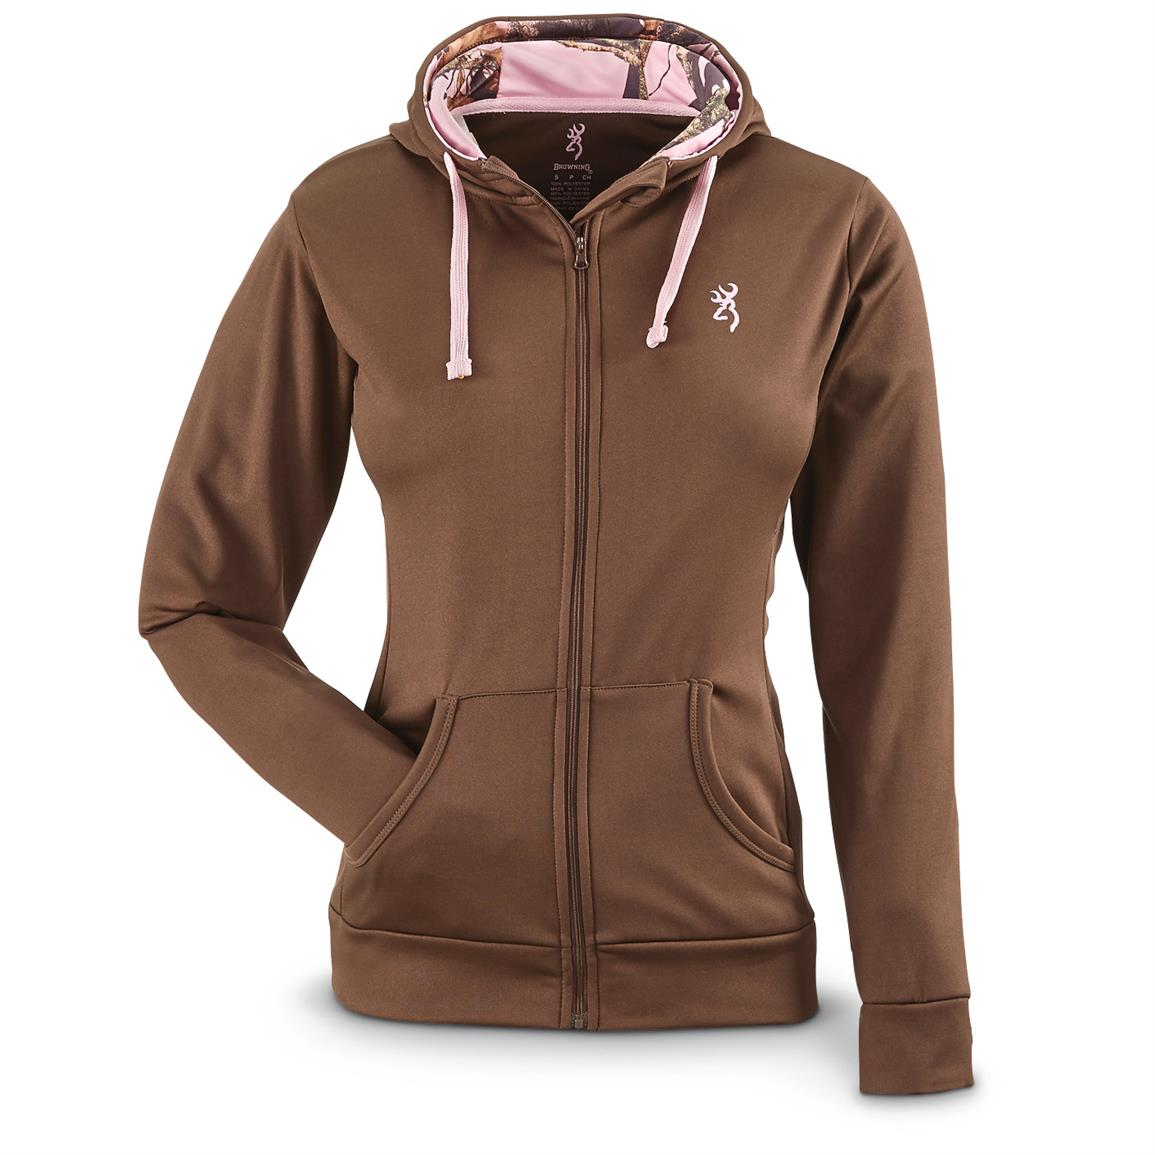 Browning Women's Performance Full Zip Hoodie, Chocolate